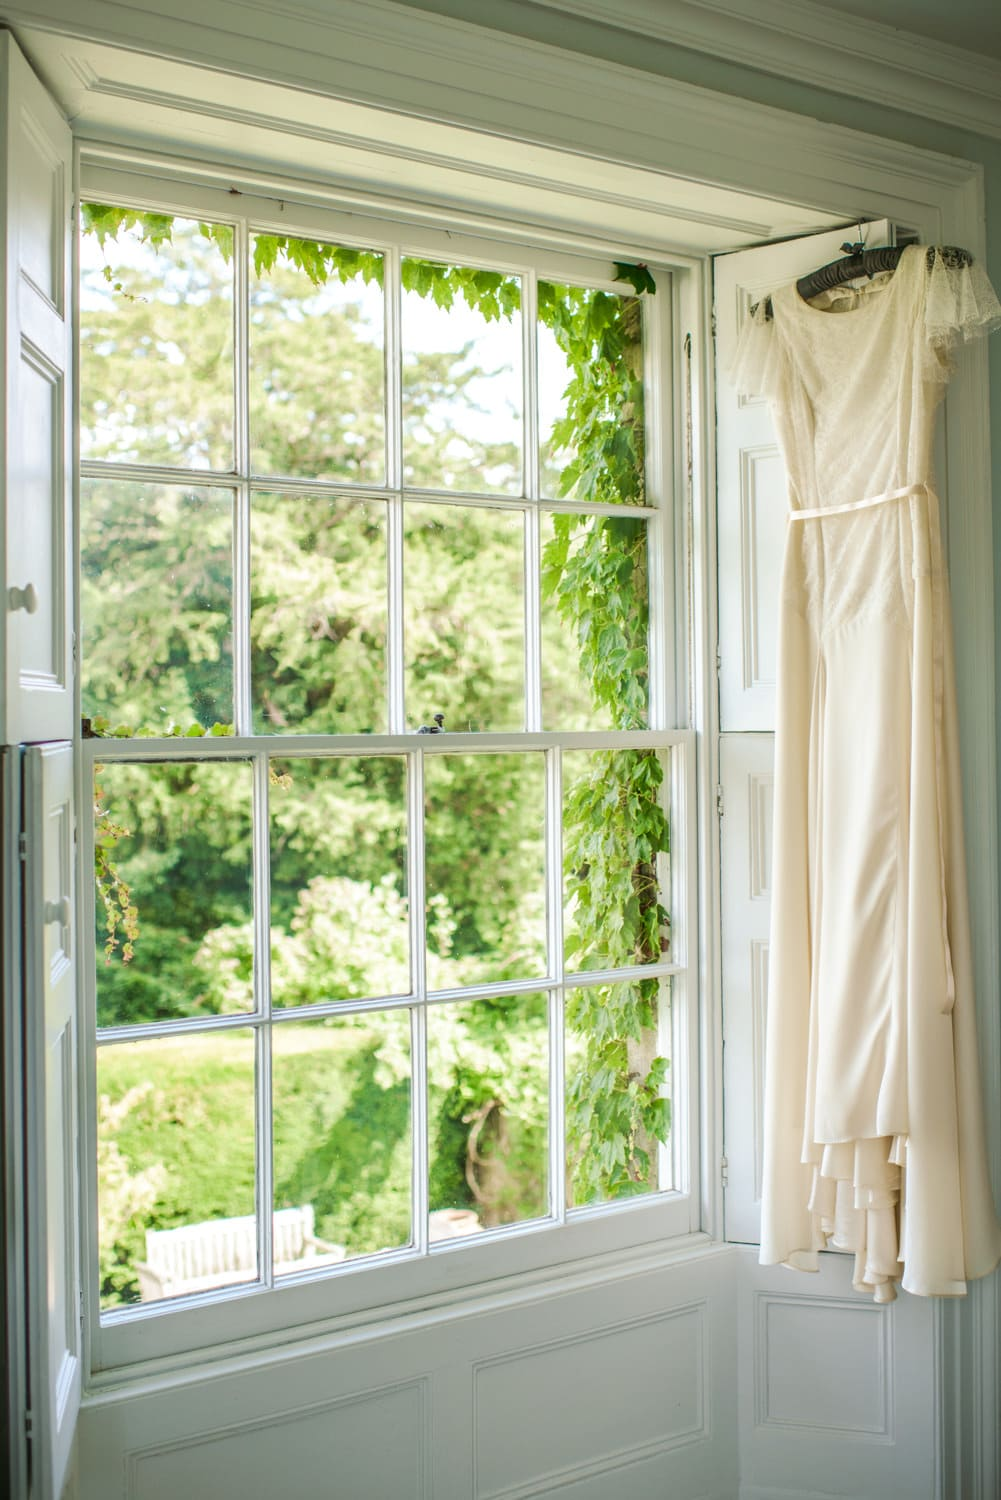 wedding dress hanging next to sash windows